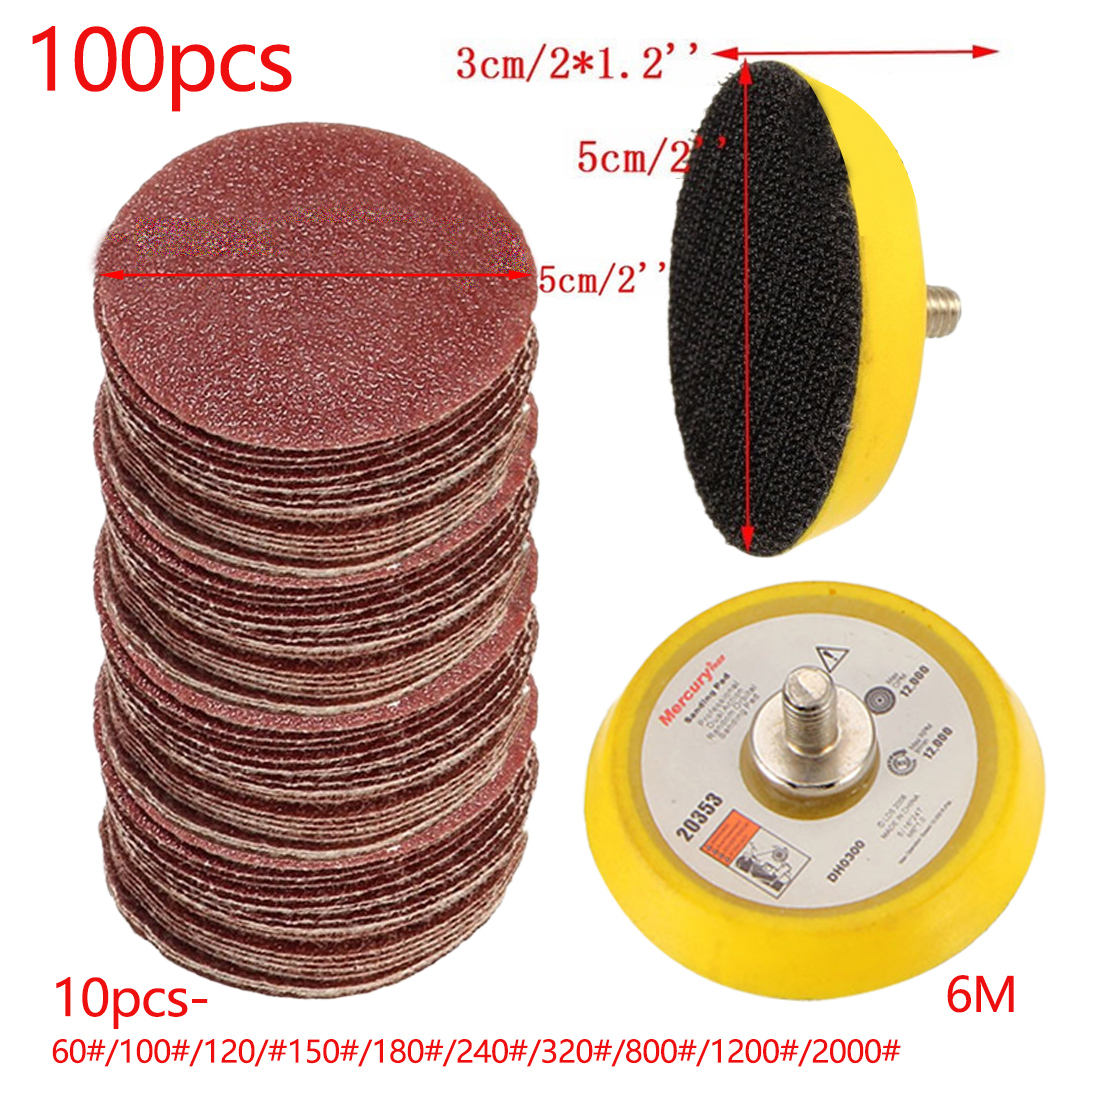 100PCS Sanding Pad Polishing Sander Disc 50mm 60-2000 Grit Paper + 1pc Hook Loop Plate Fit Dremel 4000 Electric Grinder Abrasive